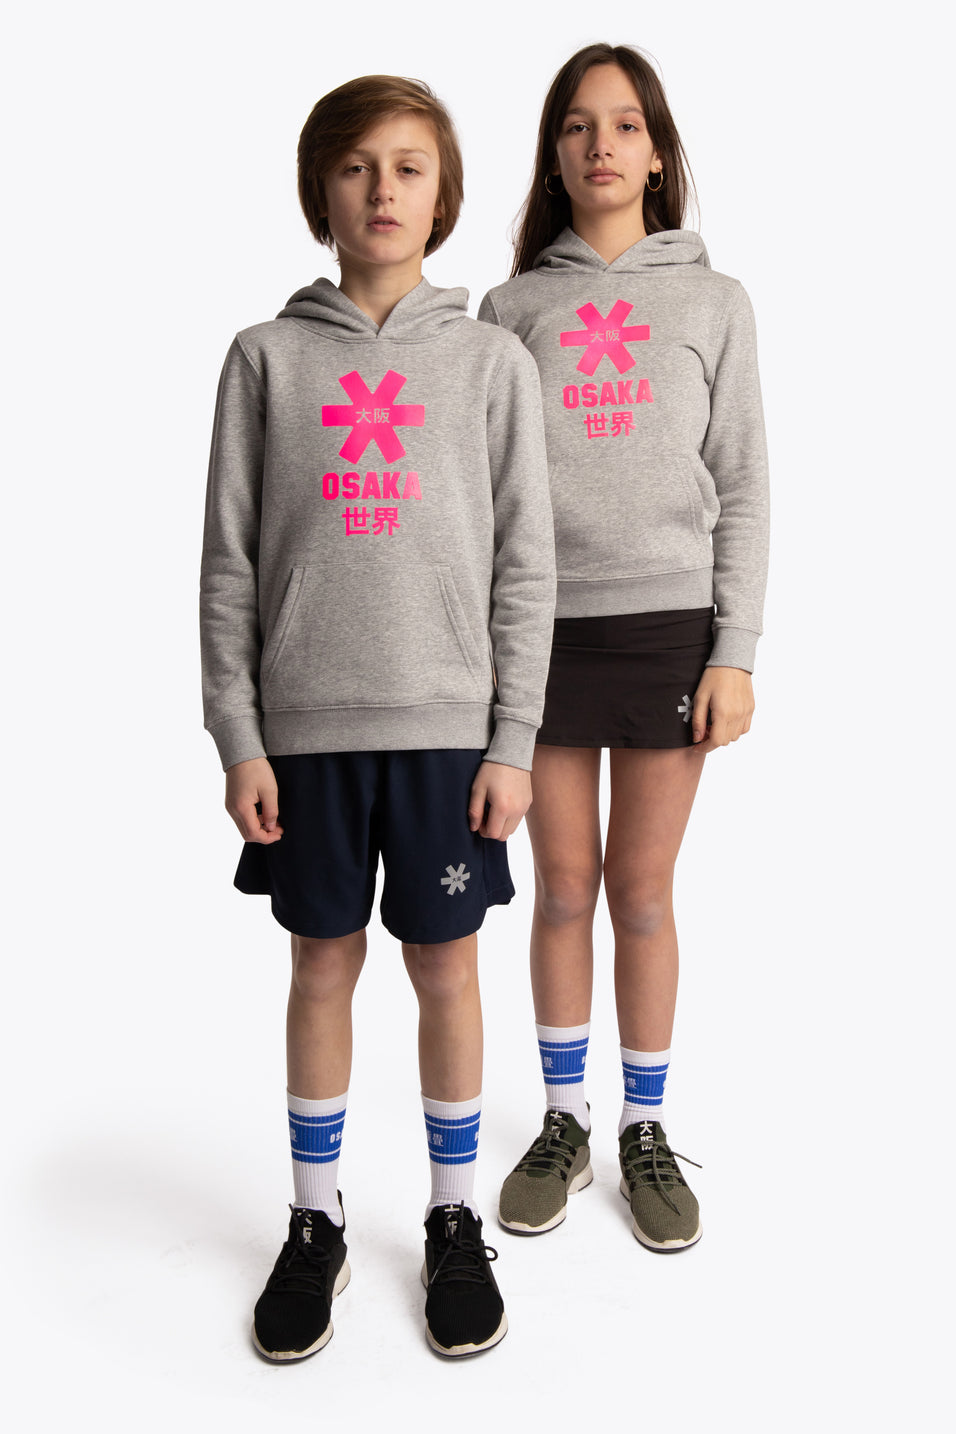 Osaka world kids hoodies